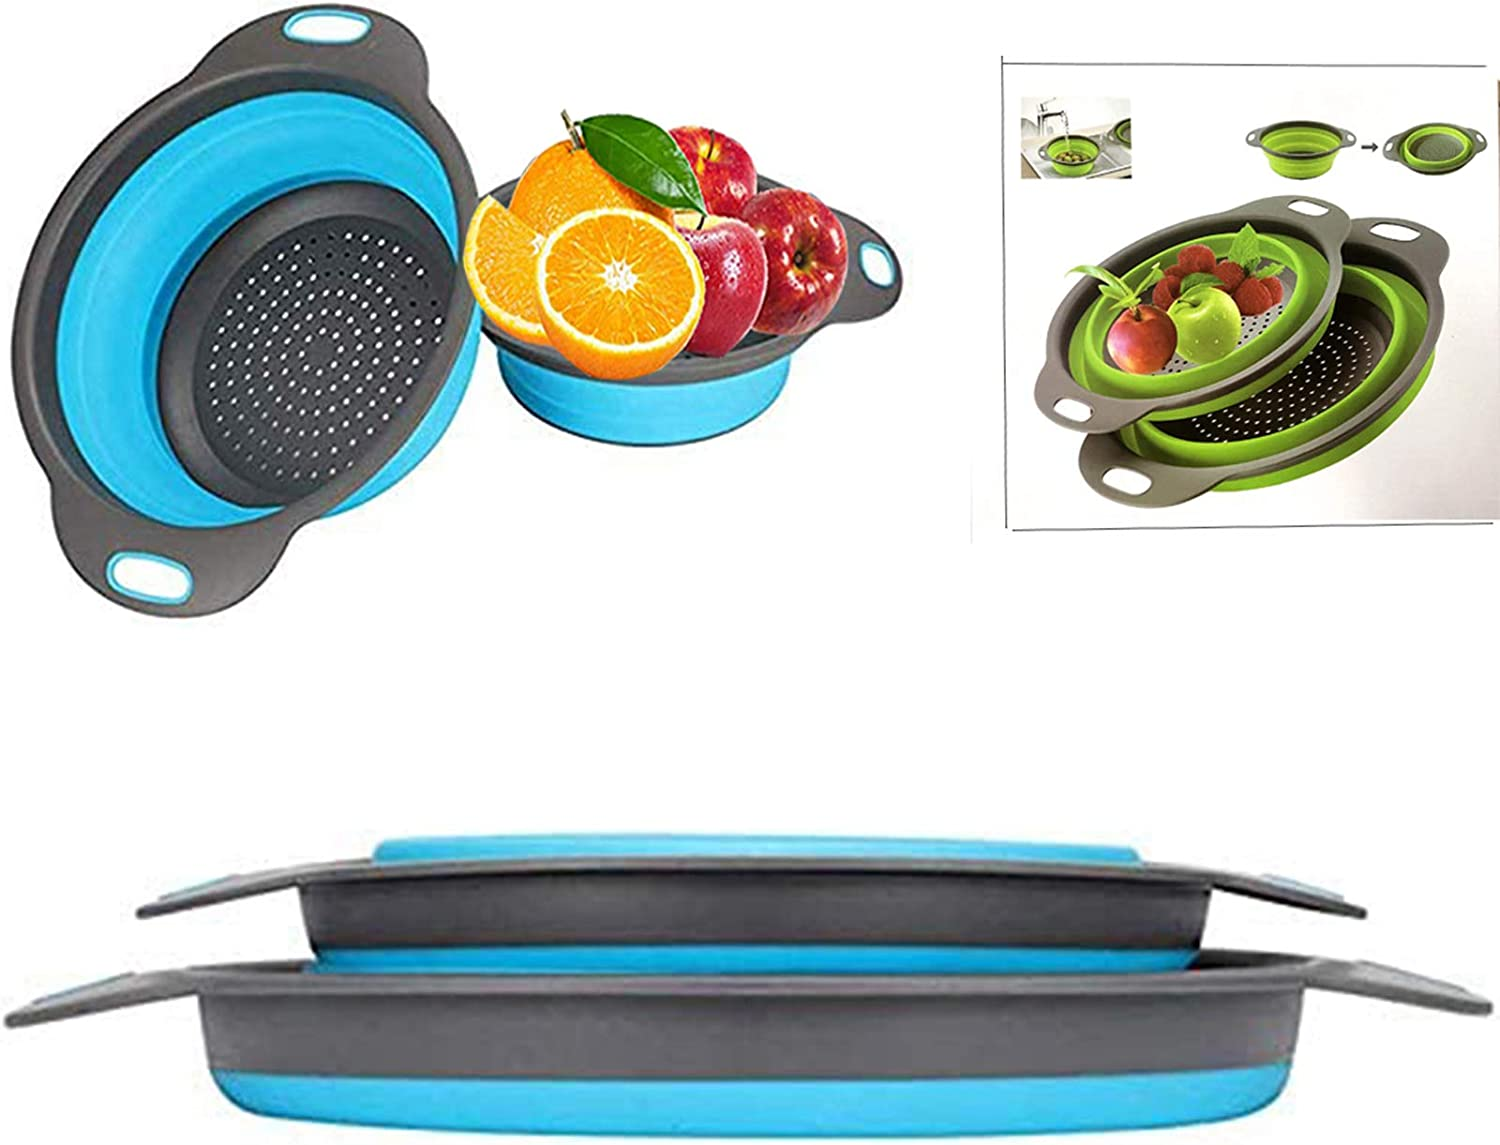 Collapsible colander, 2 foldable kits, DLD Food Grade Silicone Kitchen Strainer Space-saving foldable filter colander, sizes 8